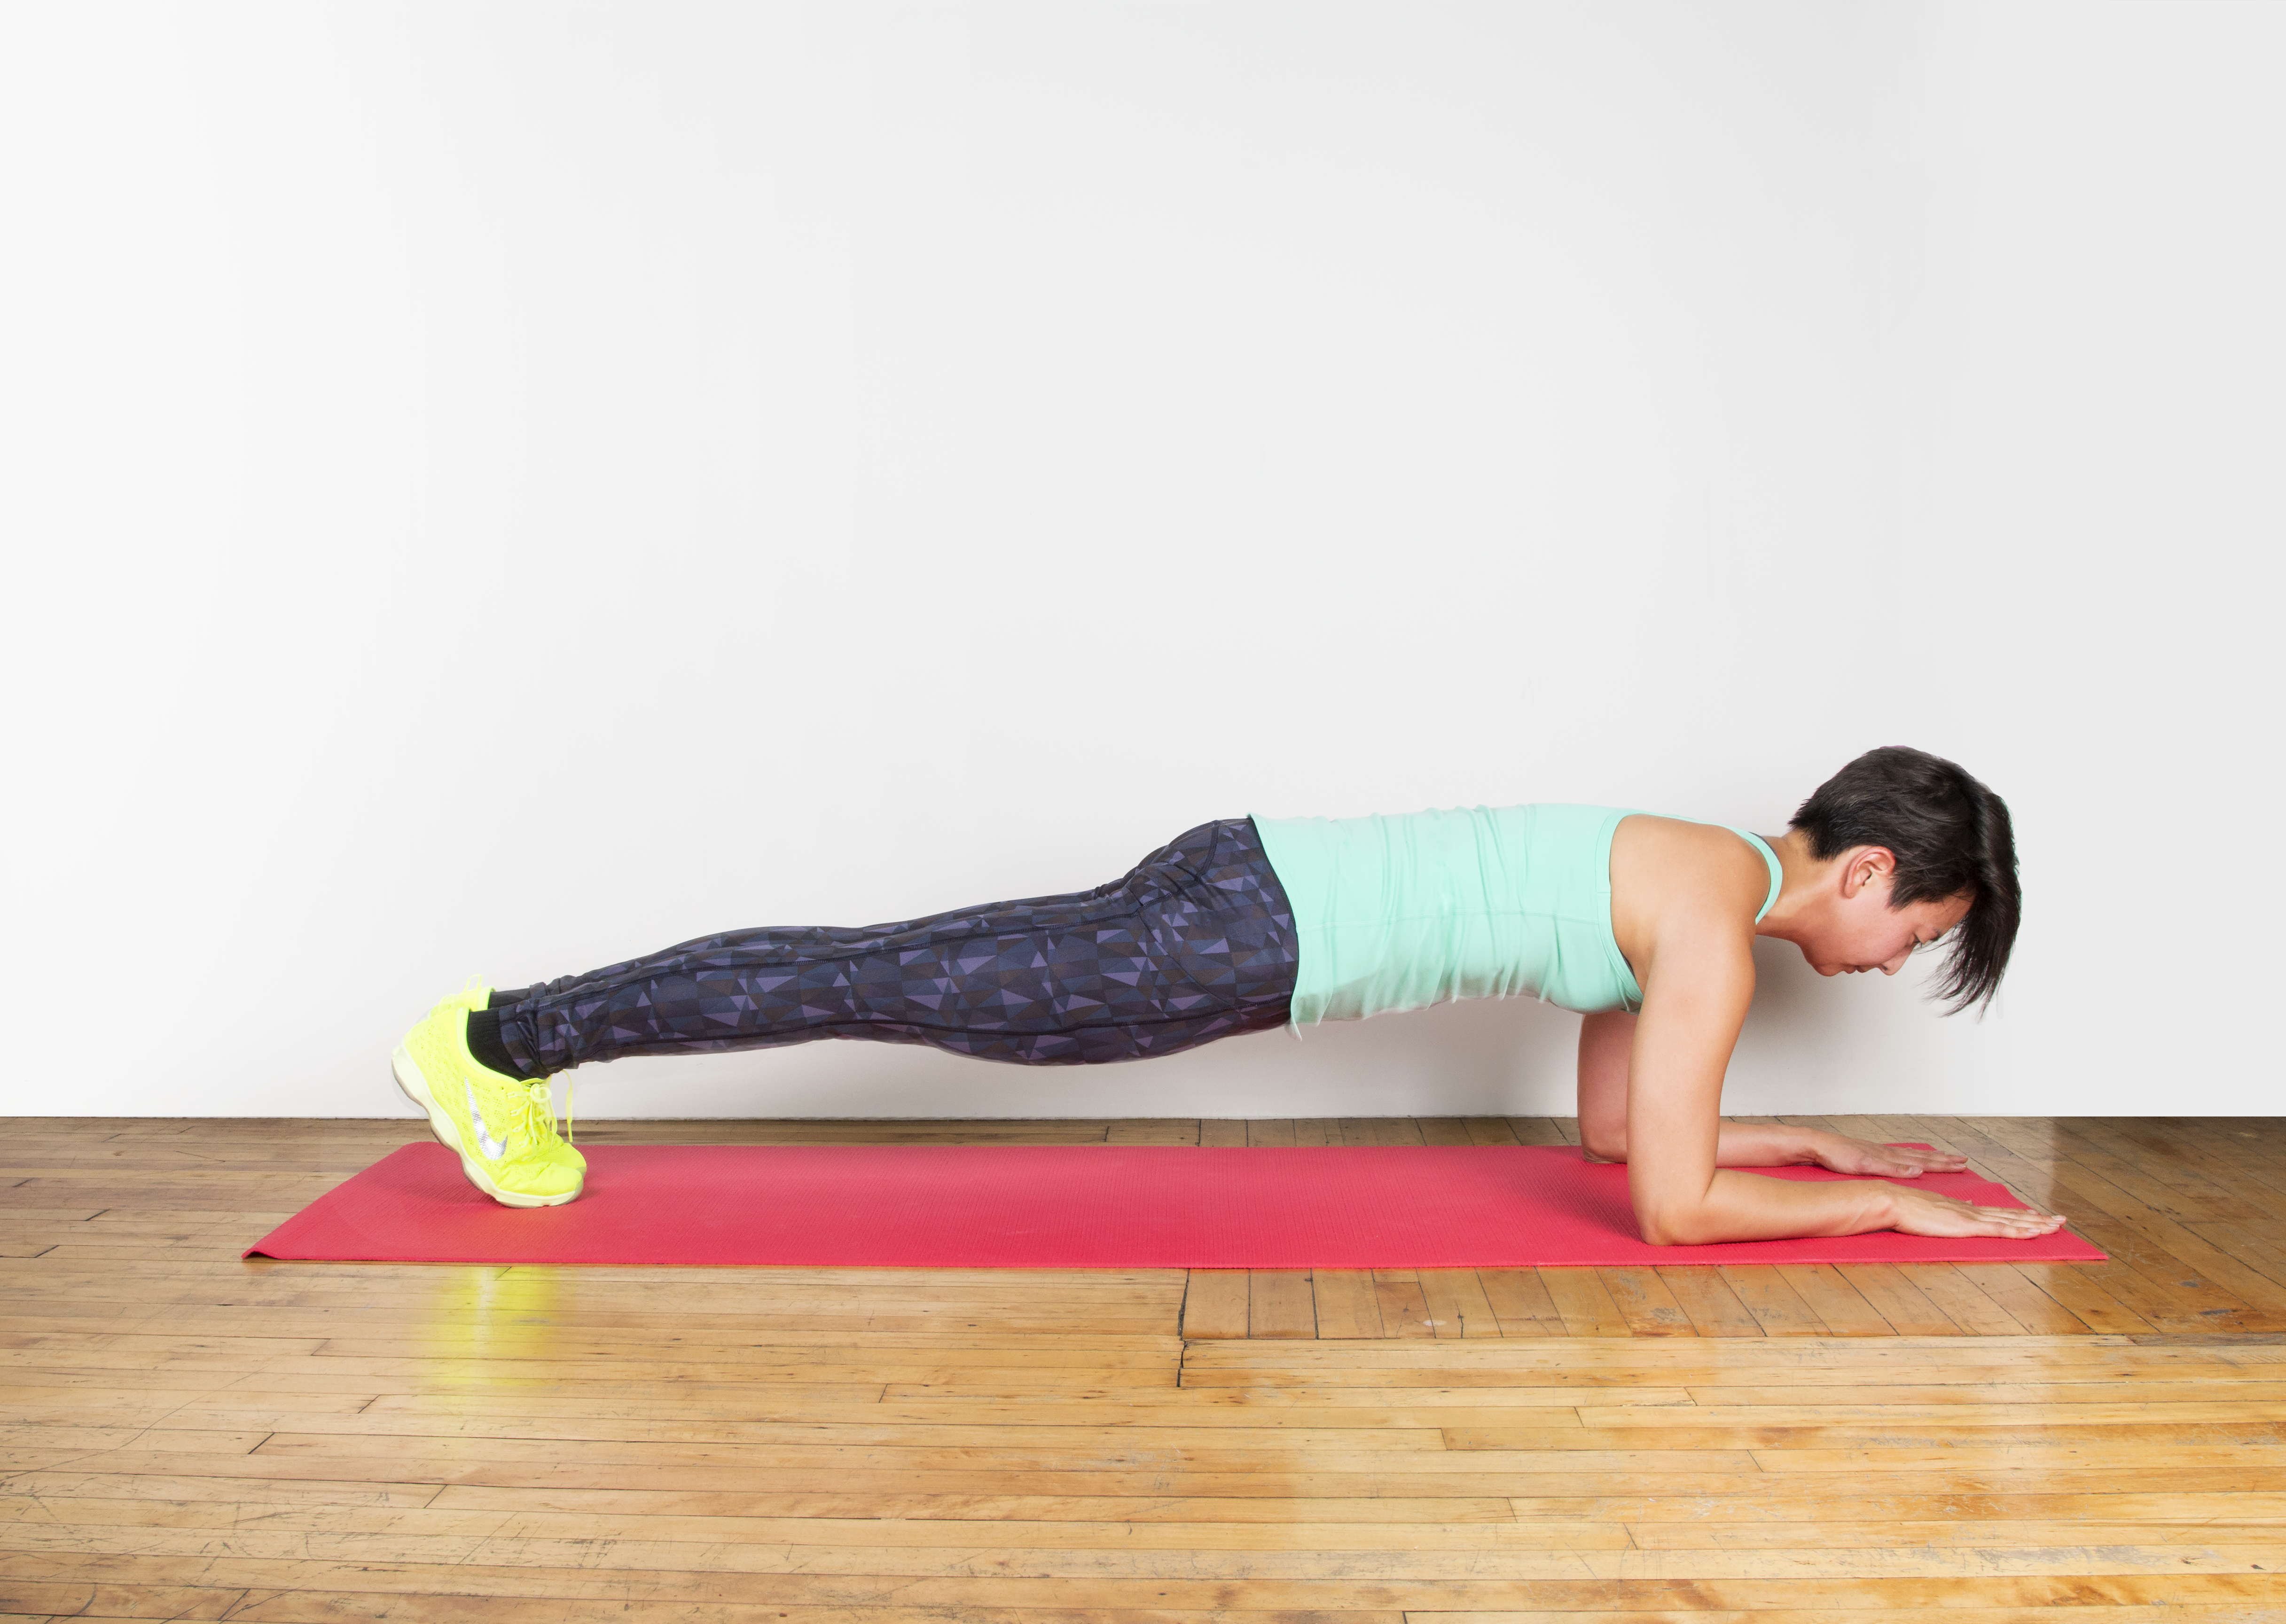 How To Do The Perfect Plank How To Do The Perfect Plank new pictures